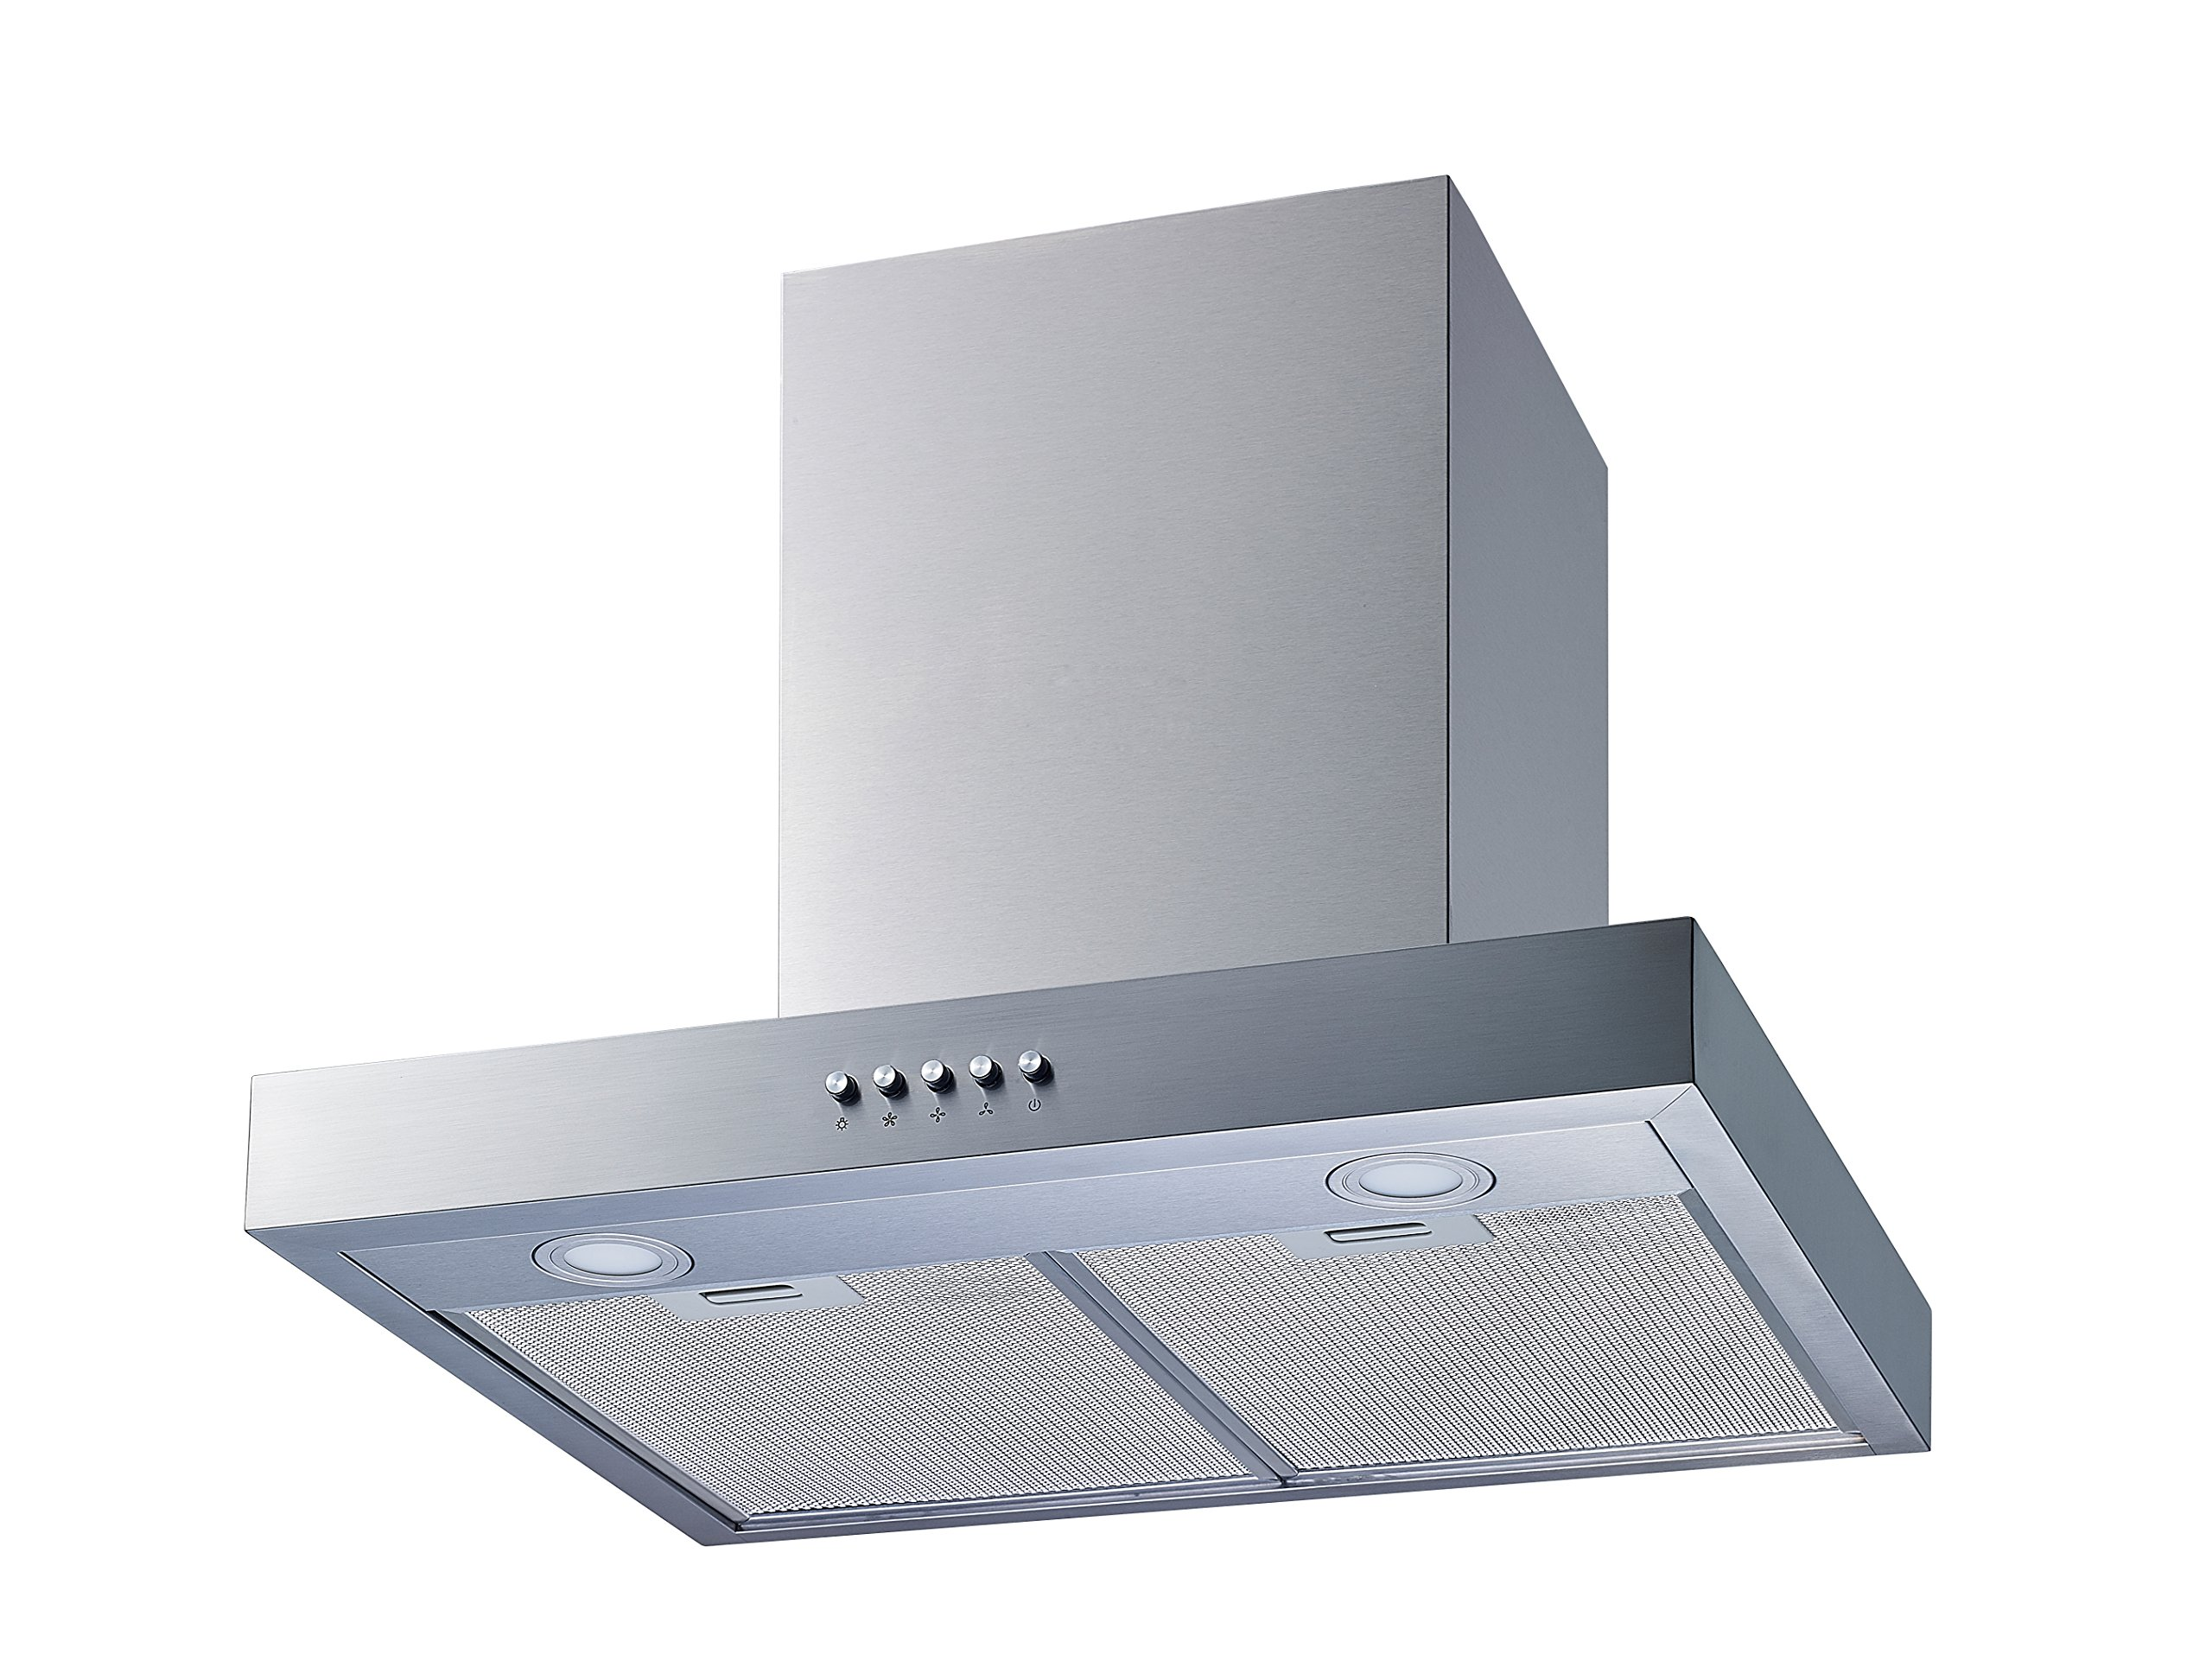 Winflo New 30'' Convertible Stainless Steel Wall Mount Range Hood with Aluminum Mesh filter, Ultra bright LED lights and Push Button 3 Speed Control